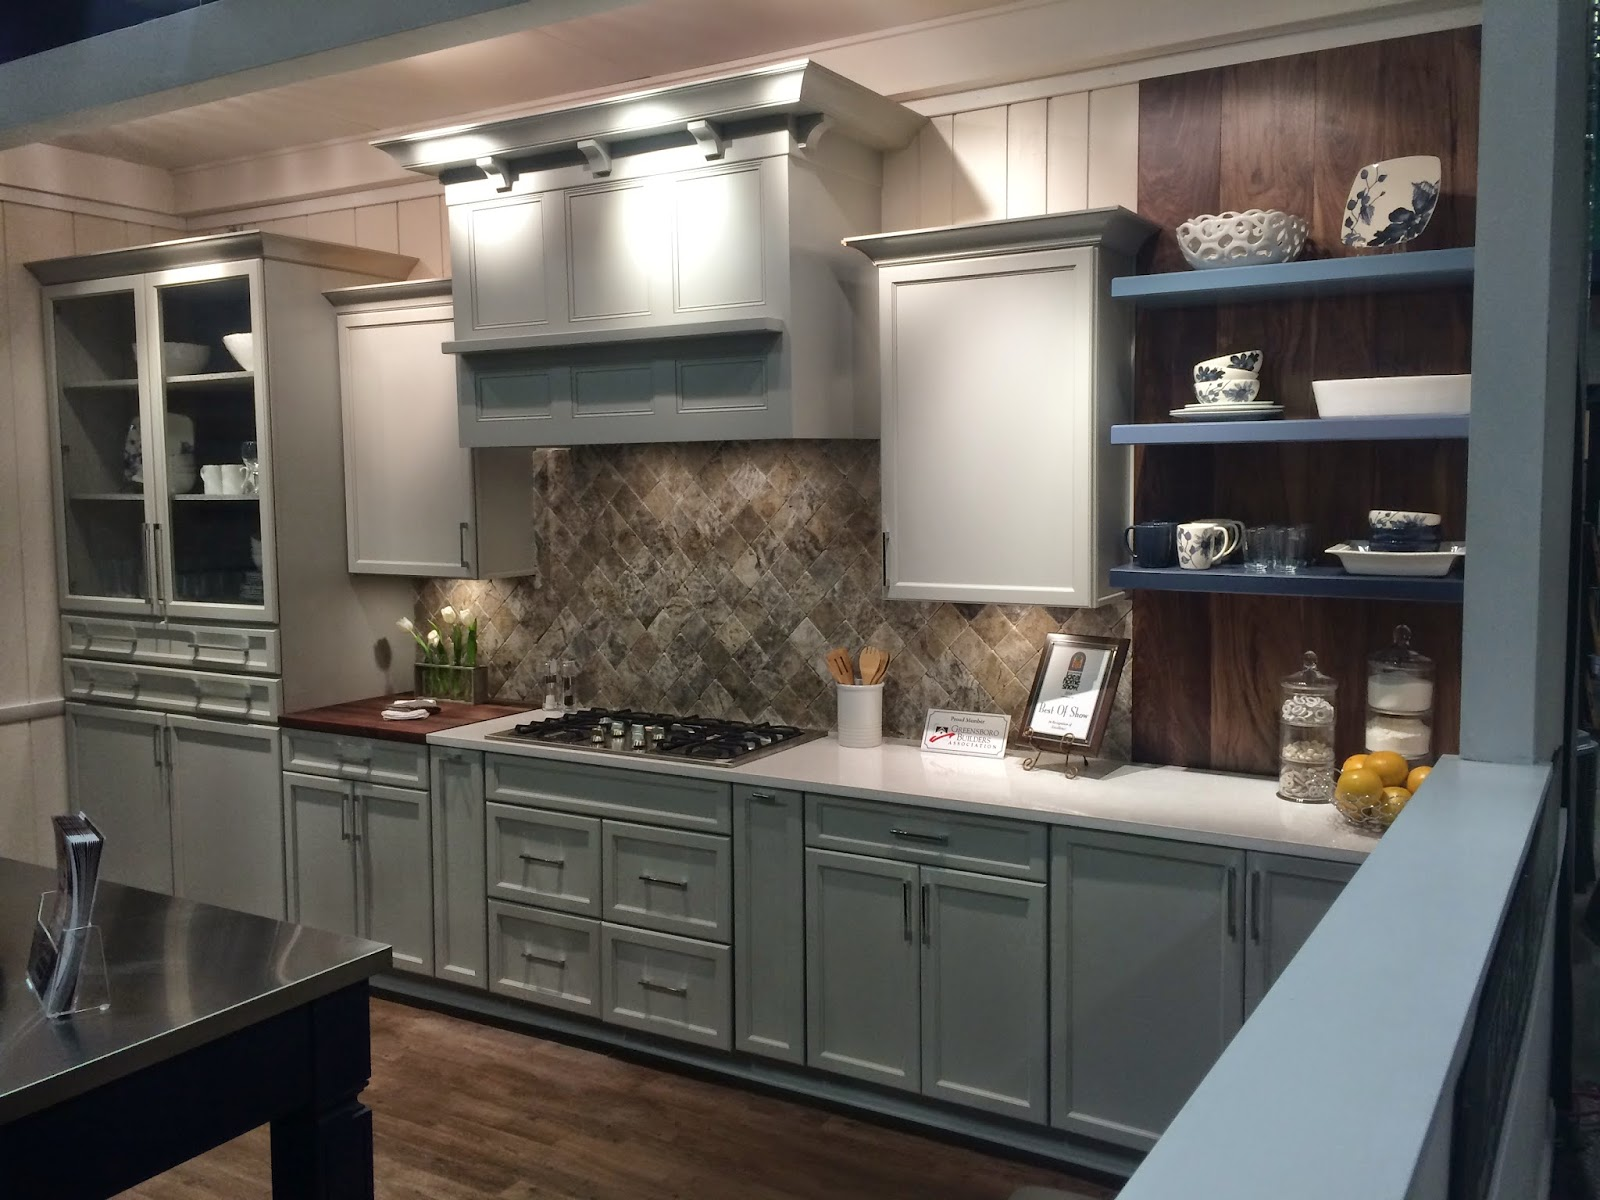 The YES Weekly Blog Marsh Kitchens Wins Best in Show